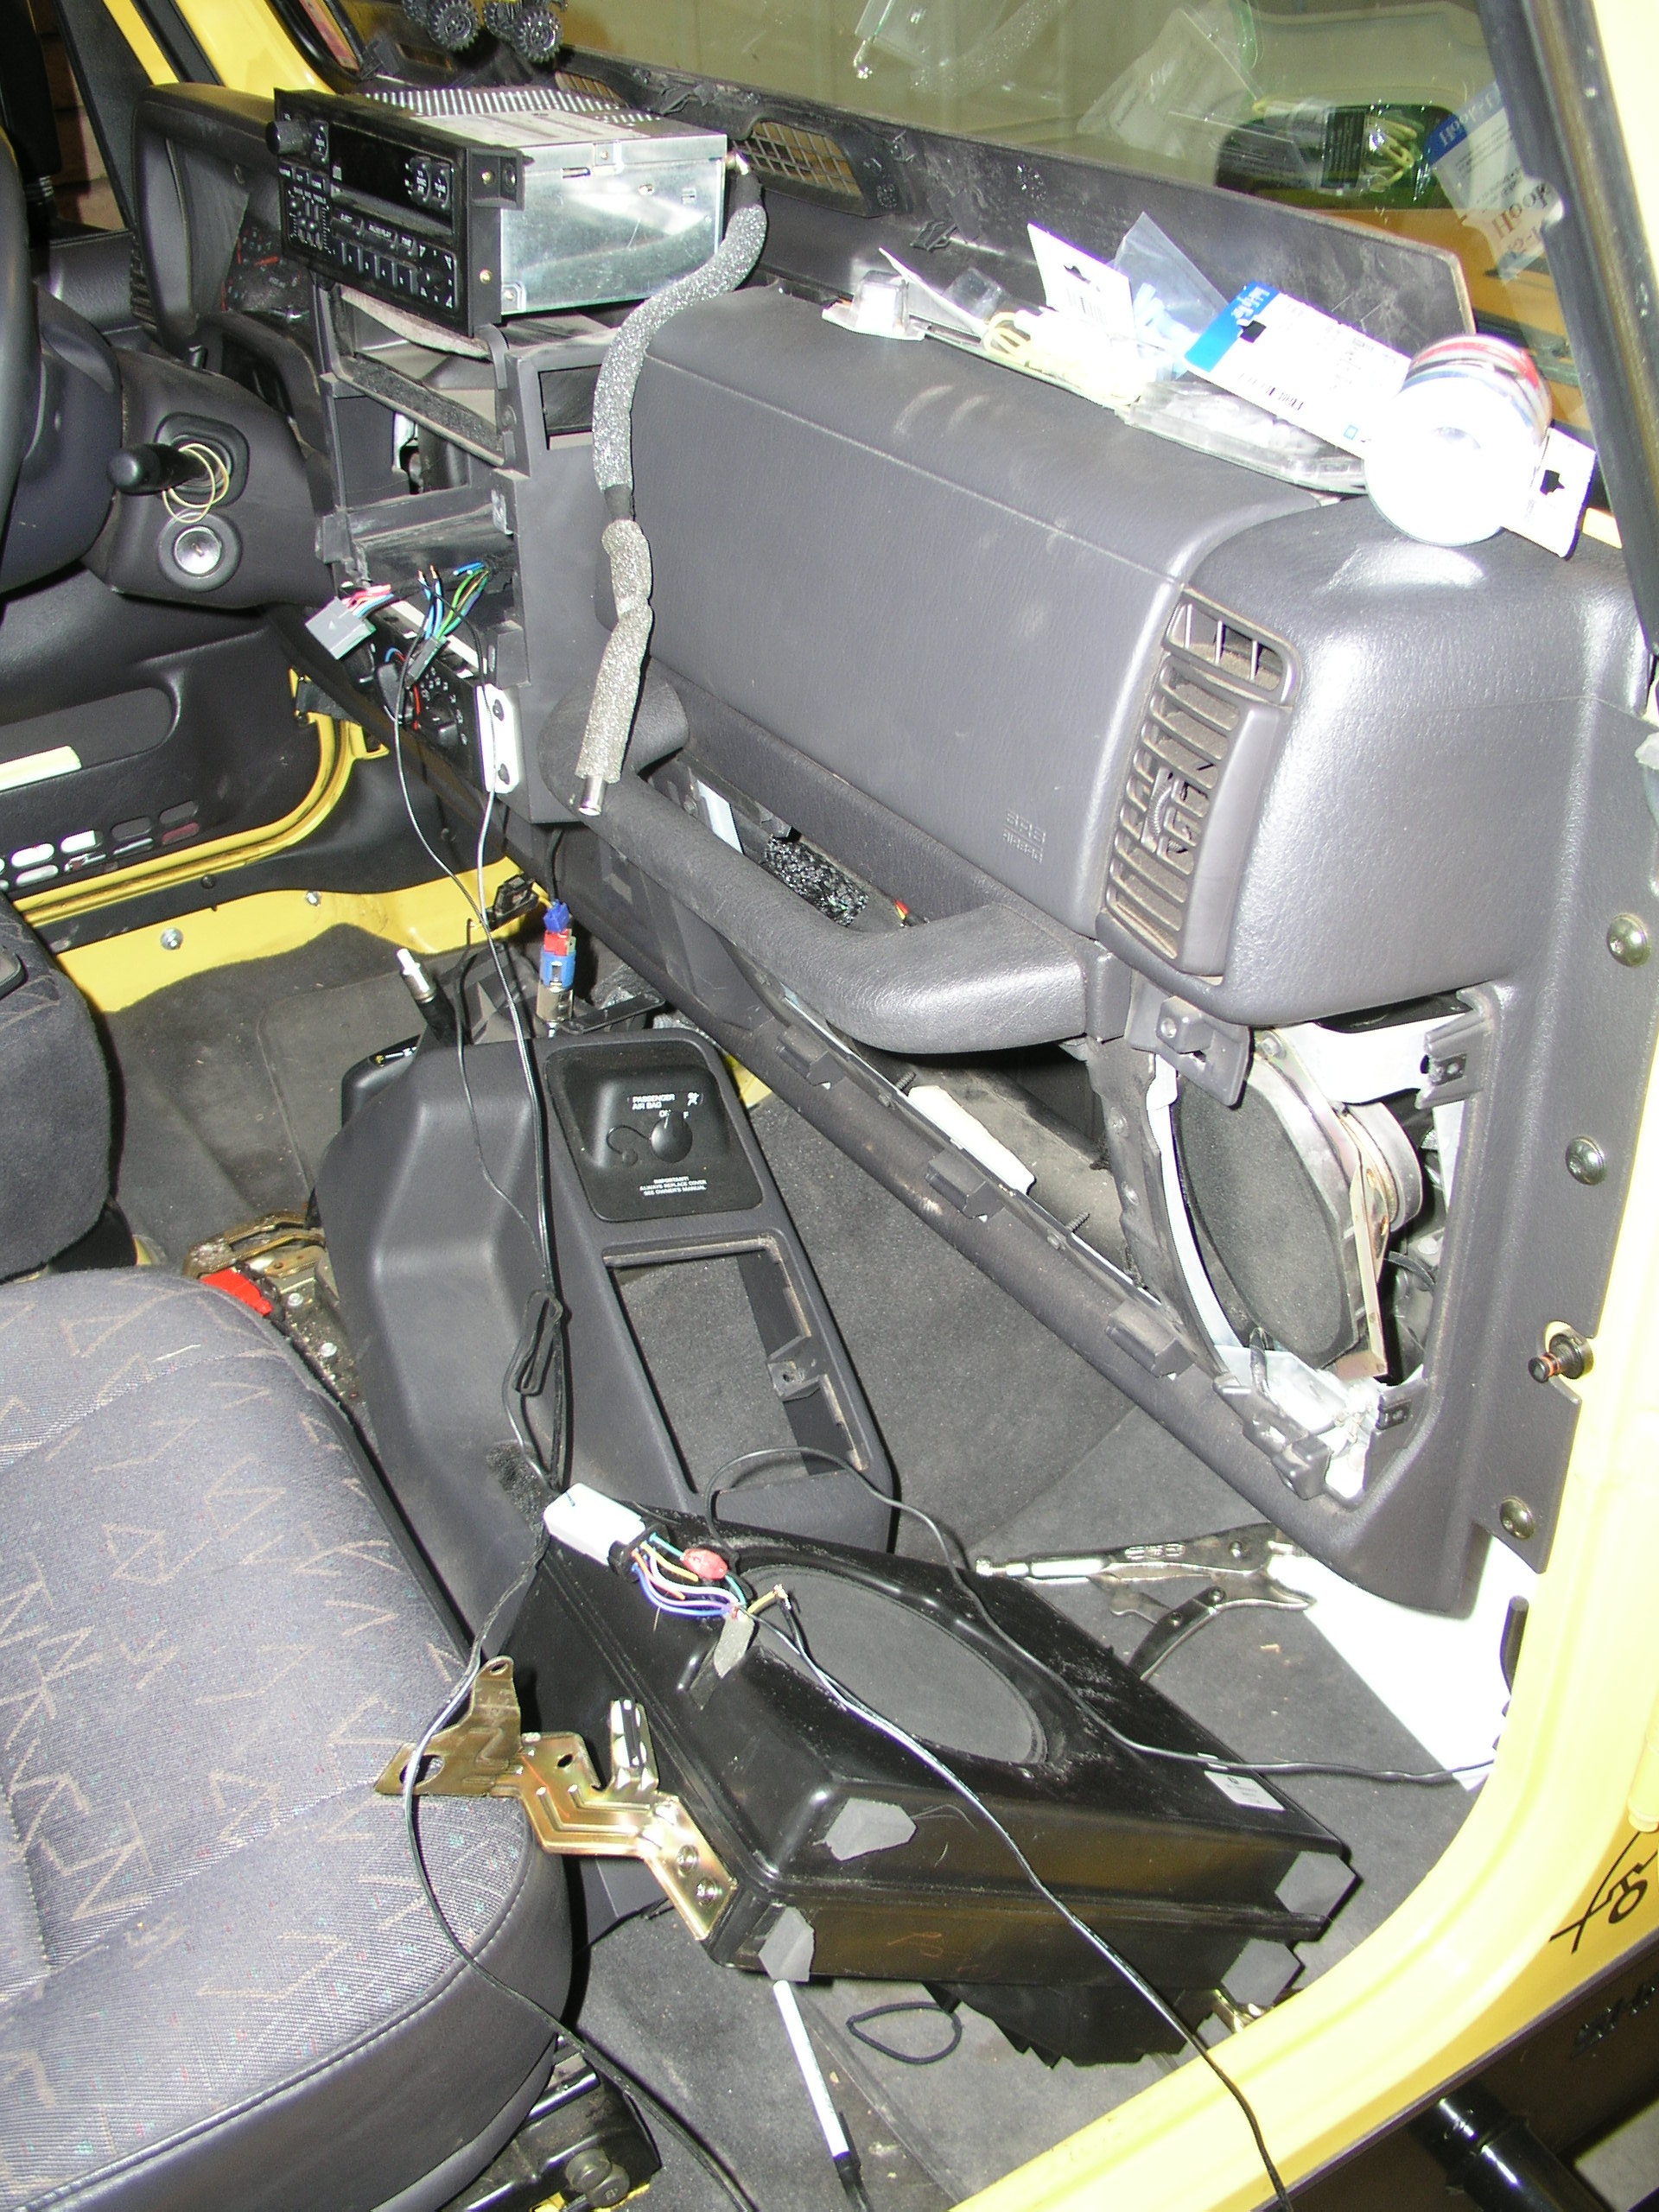 2005 jeep wrangler stereo with factory subwoofer wiring diagram 63 wiring  diagram images Jeep TJ Subwoofer